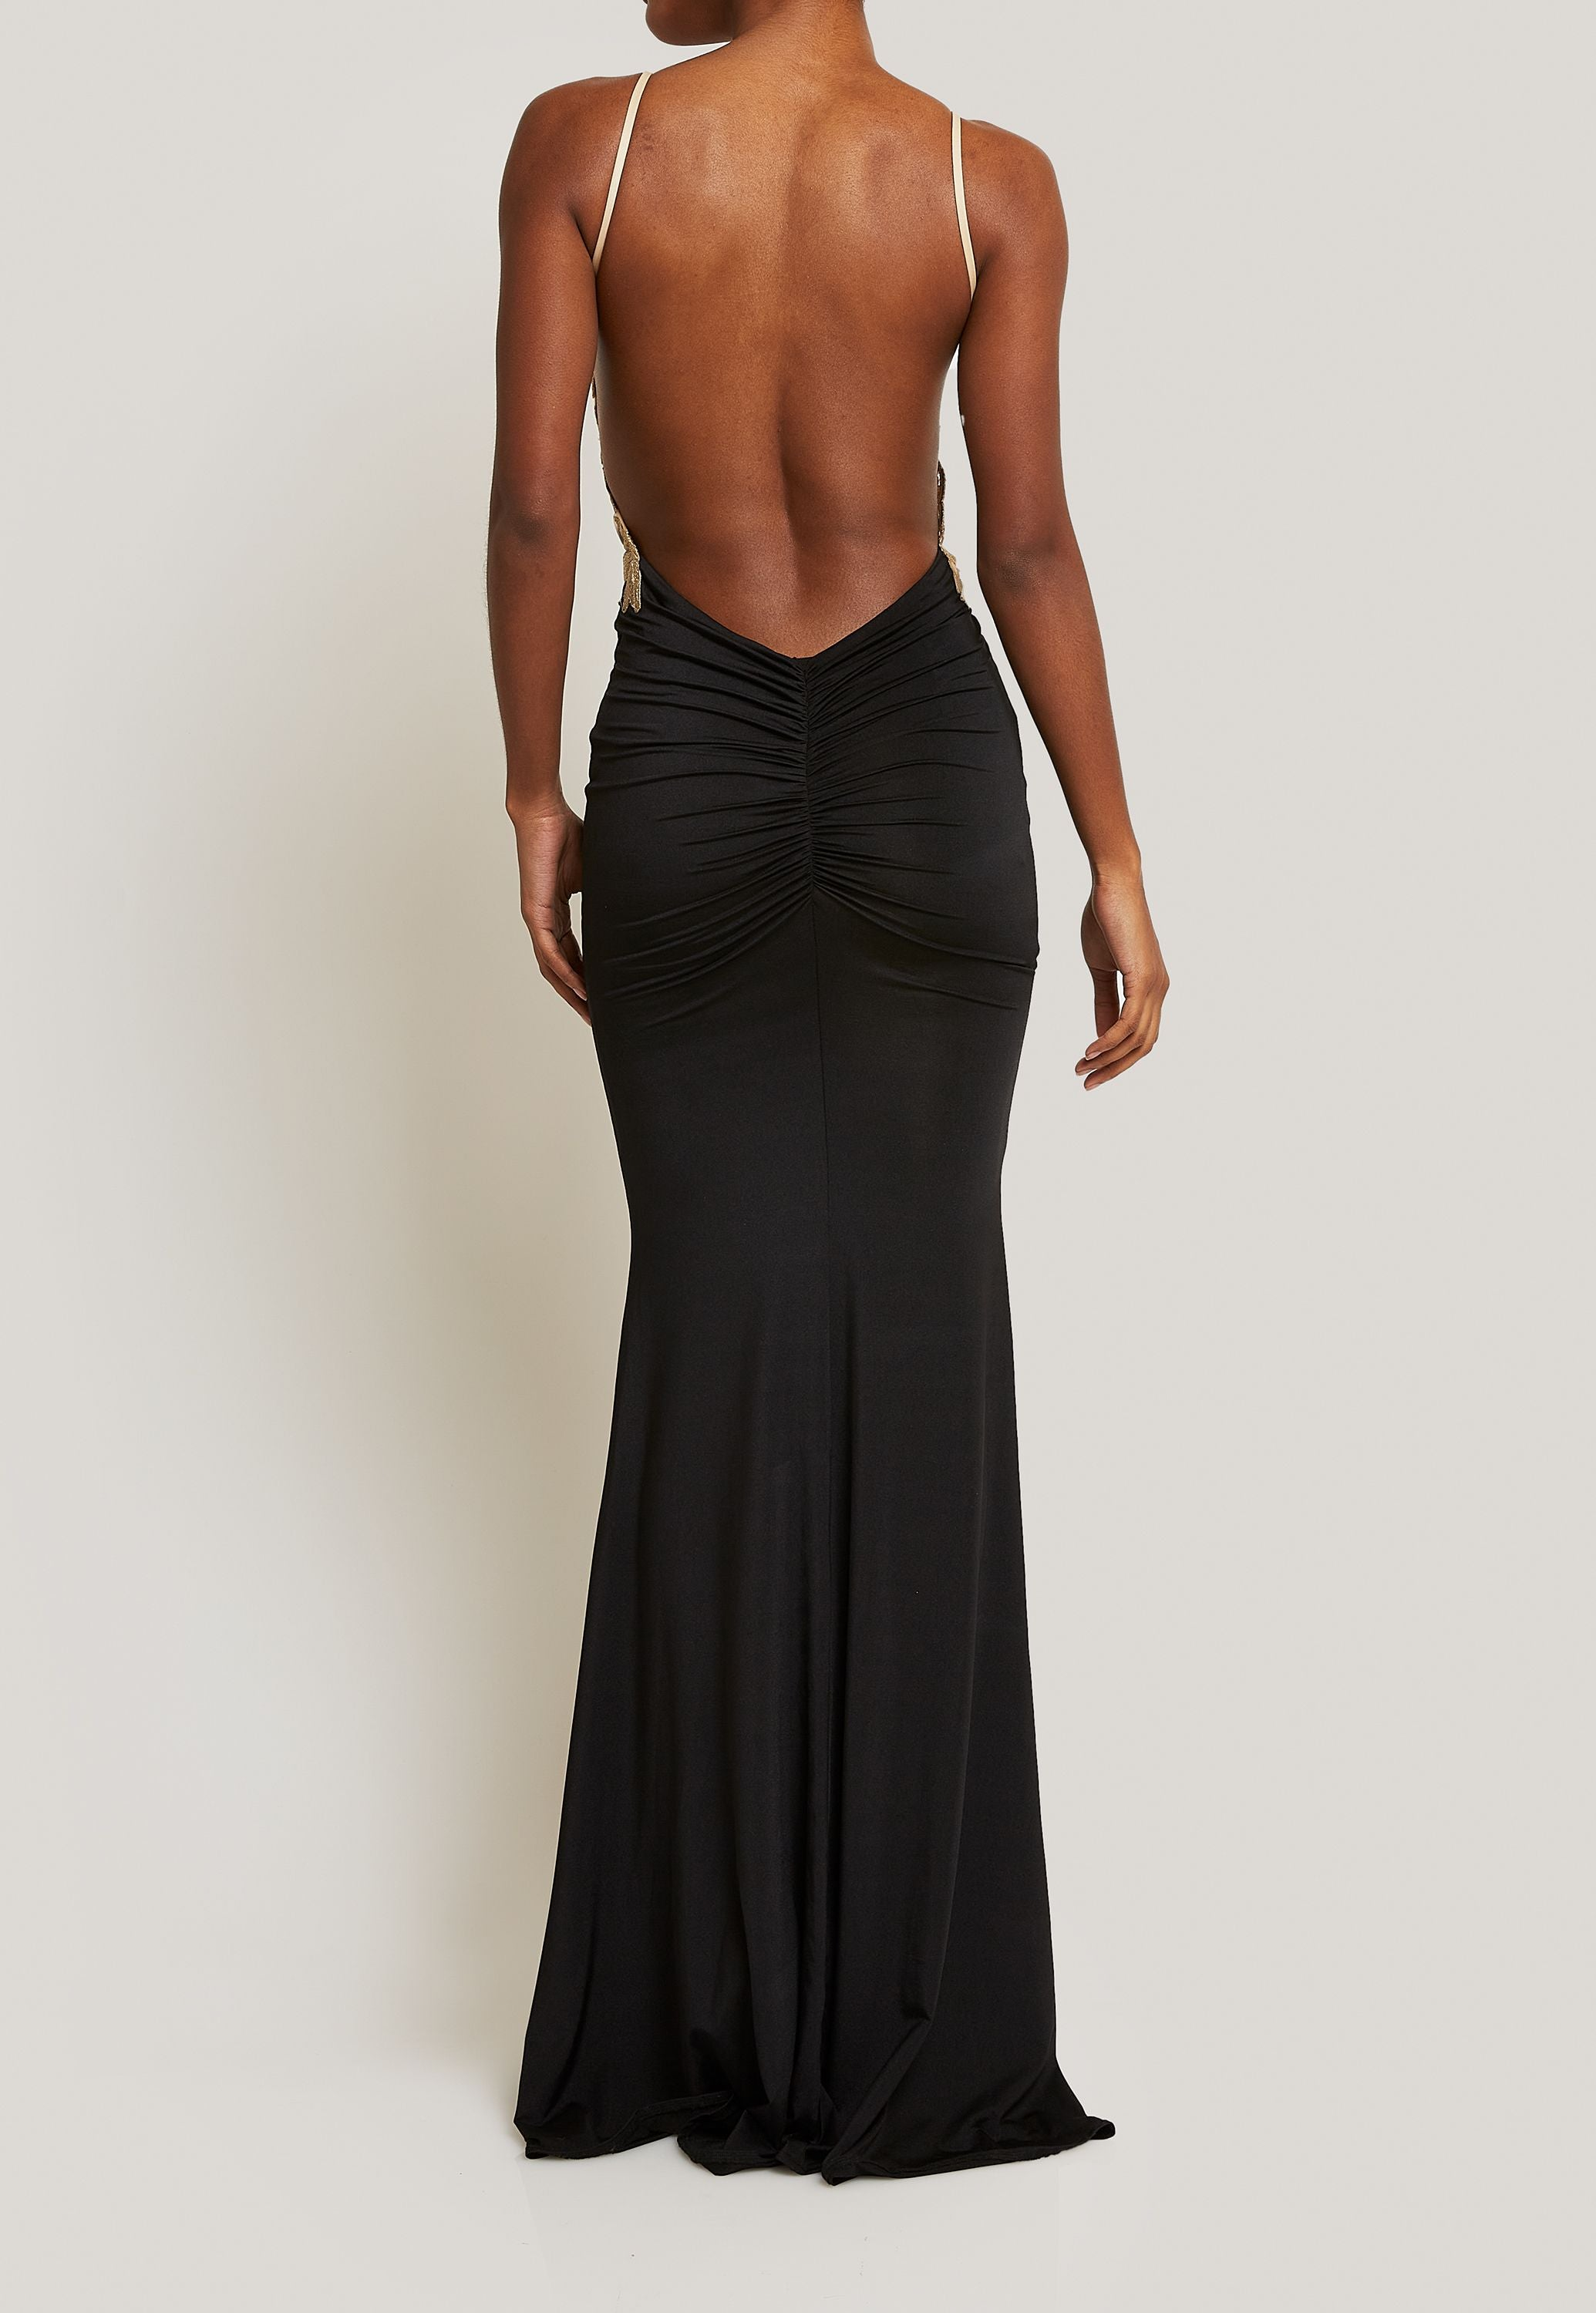 BODY FITTING BLACK BACKLESS GOWN WITH GOLD LACE BODICE